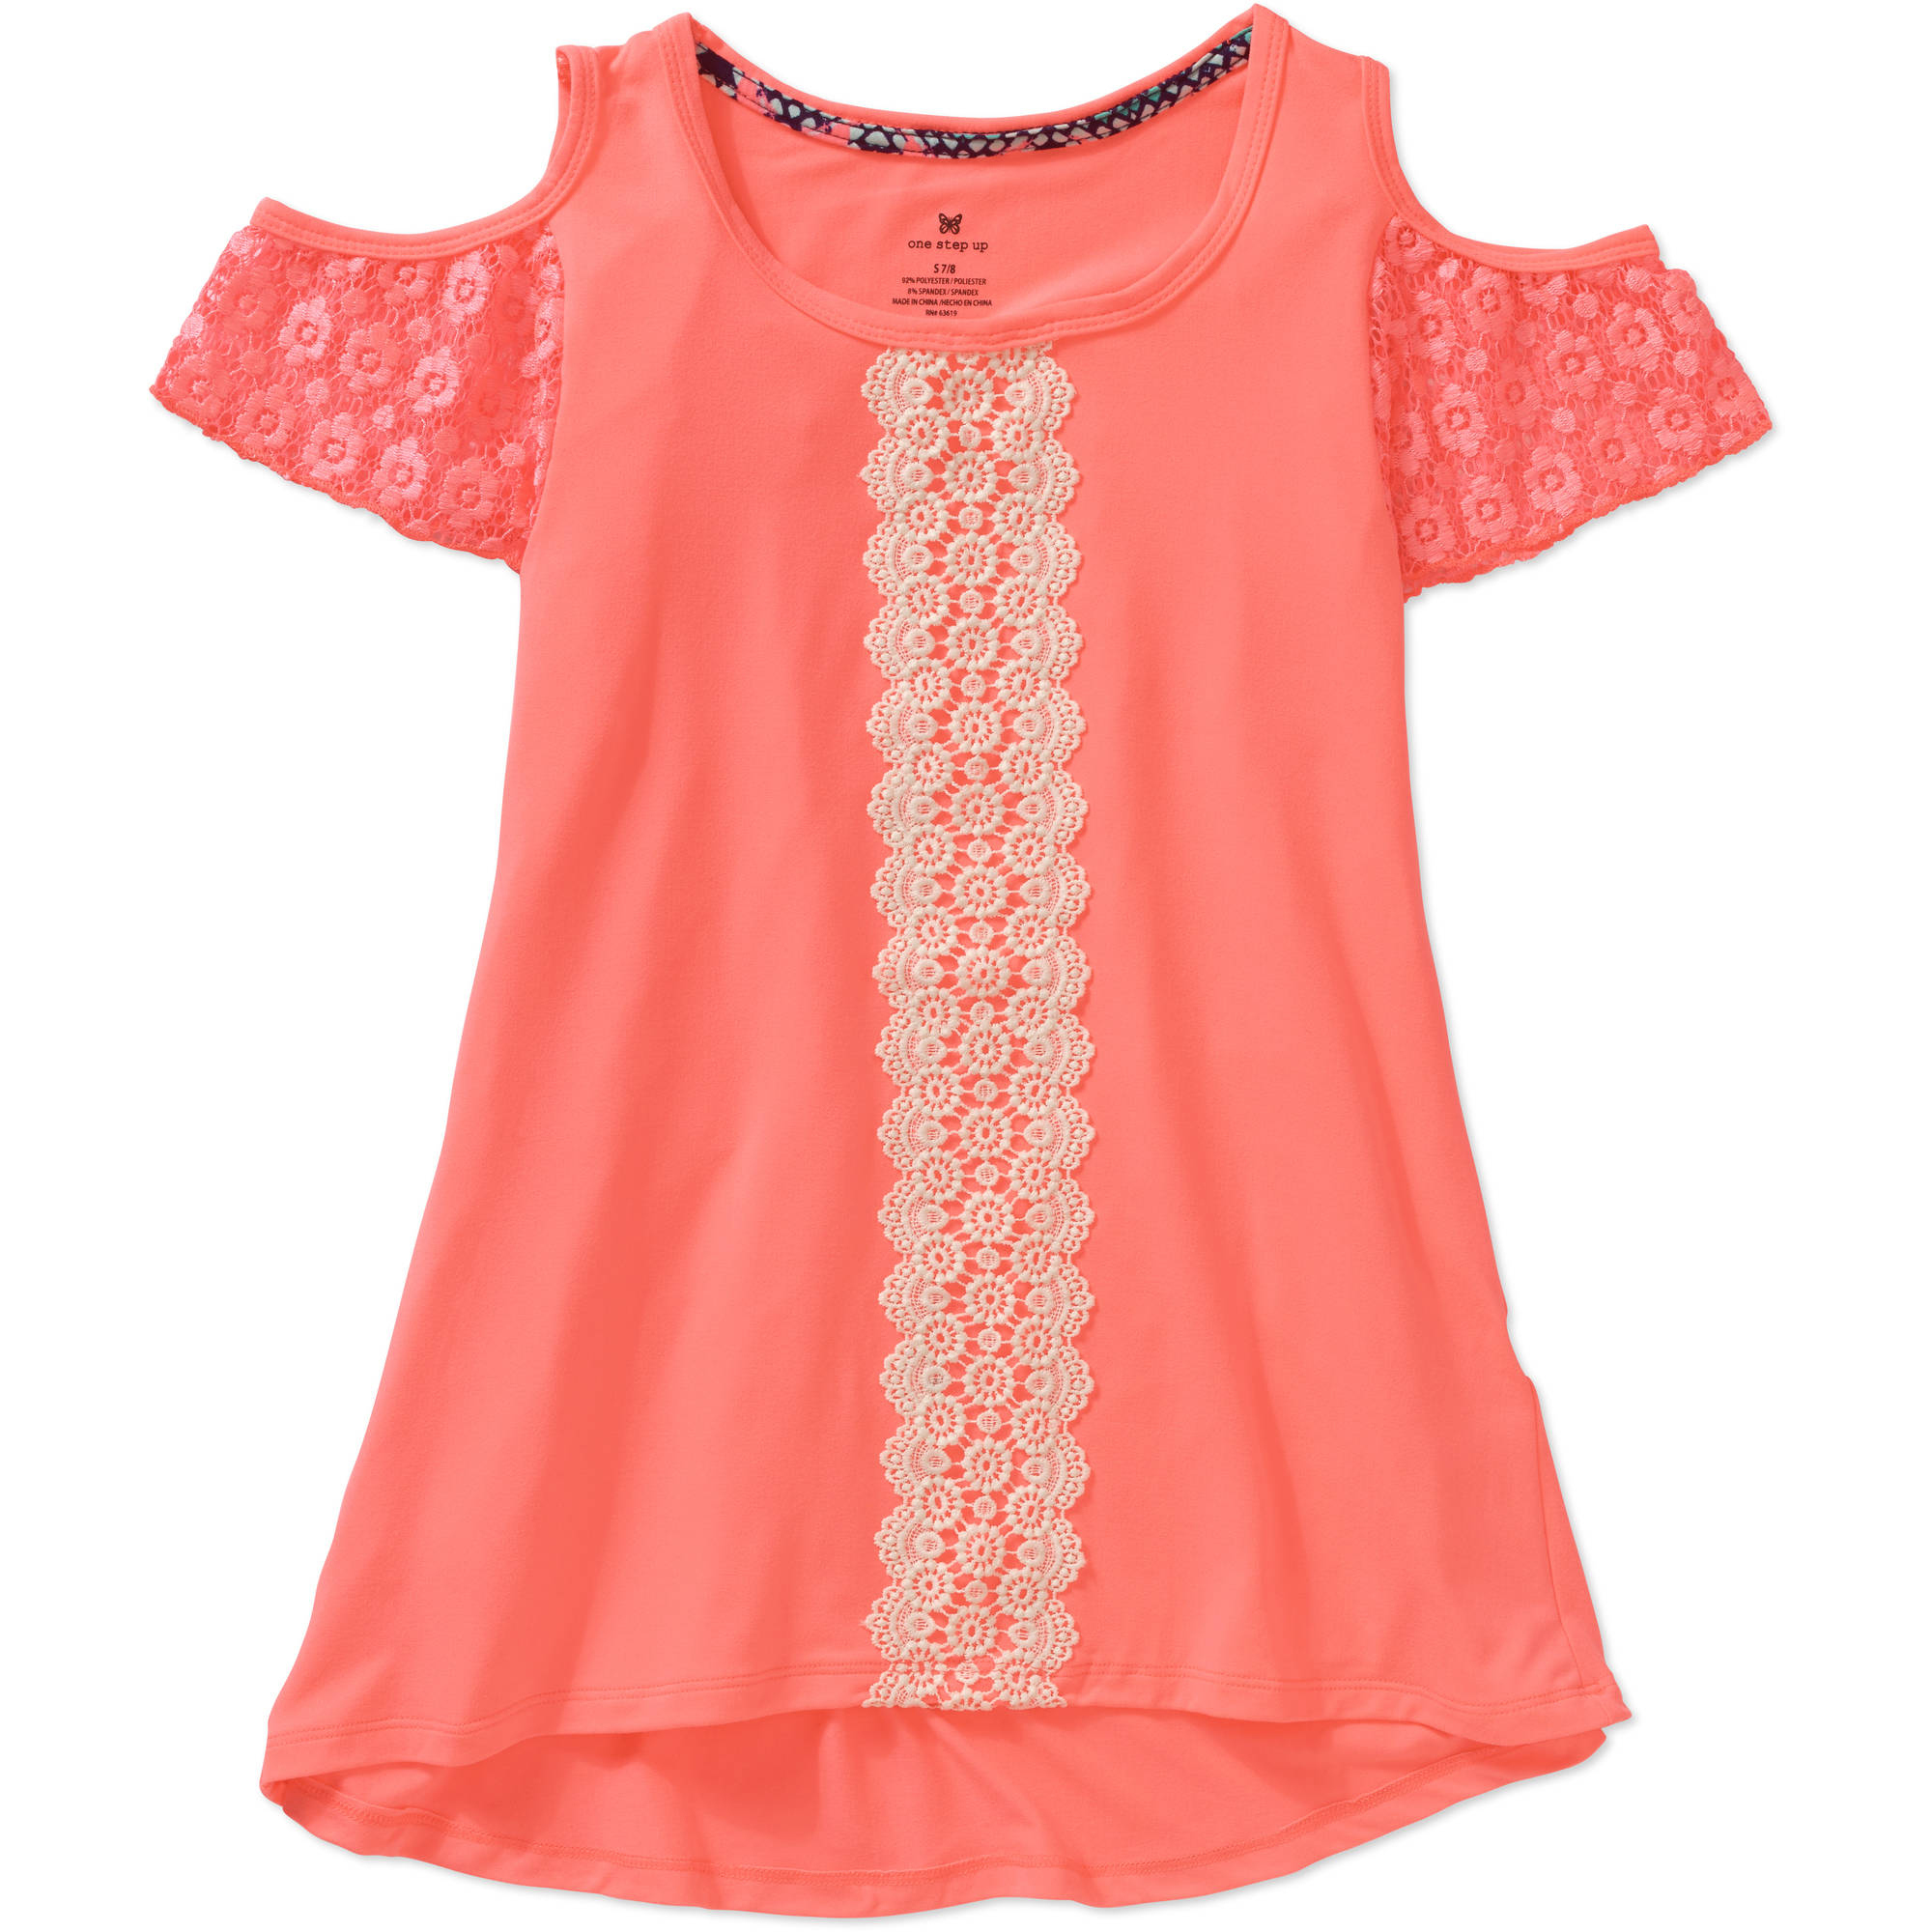 One Step Up Little Girls' Fashion Mix Cold Shoulder Lace Sleeve Tunic Top with Crochet Trim